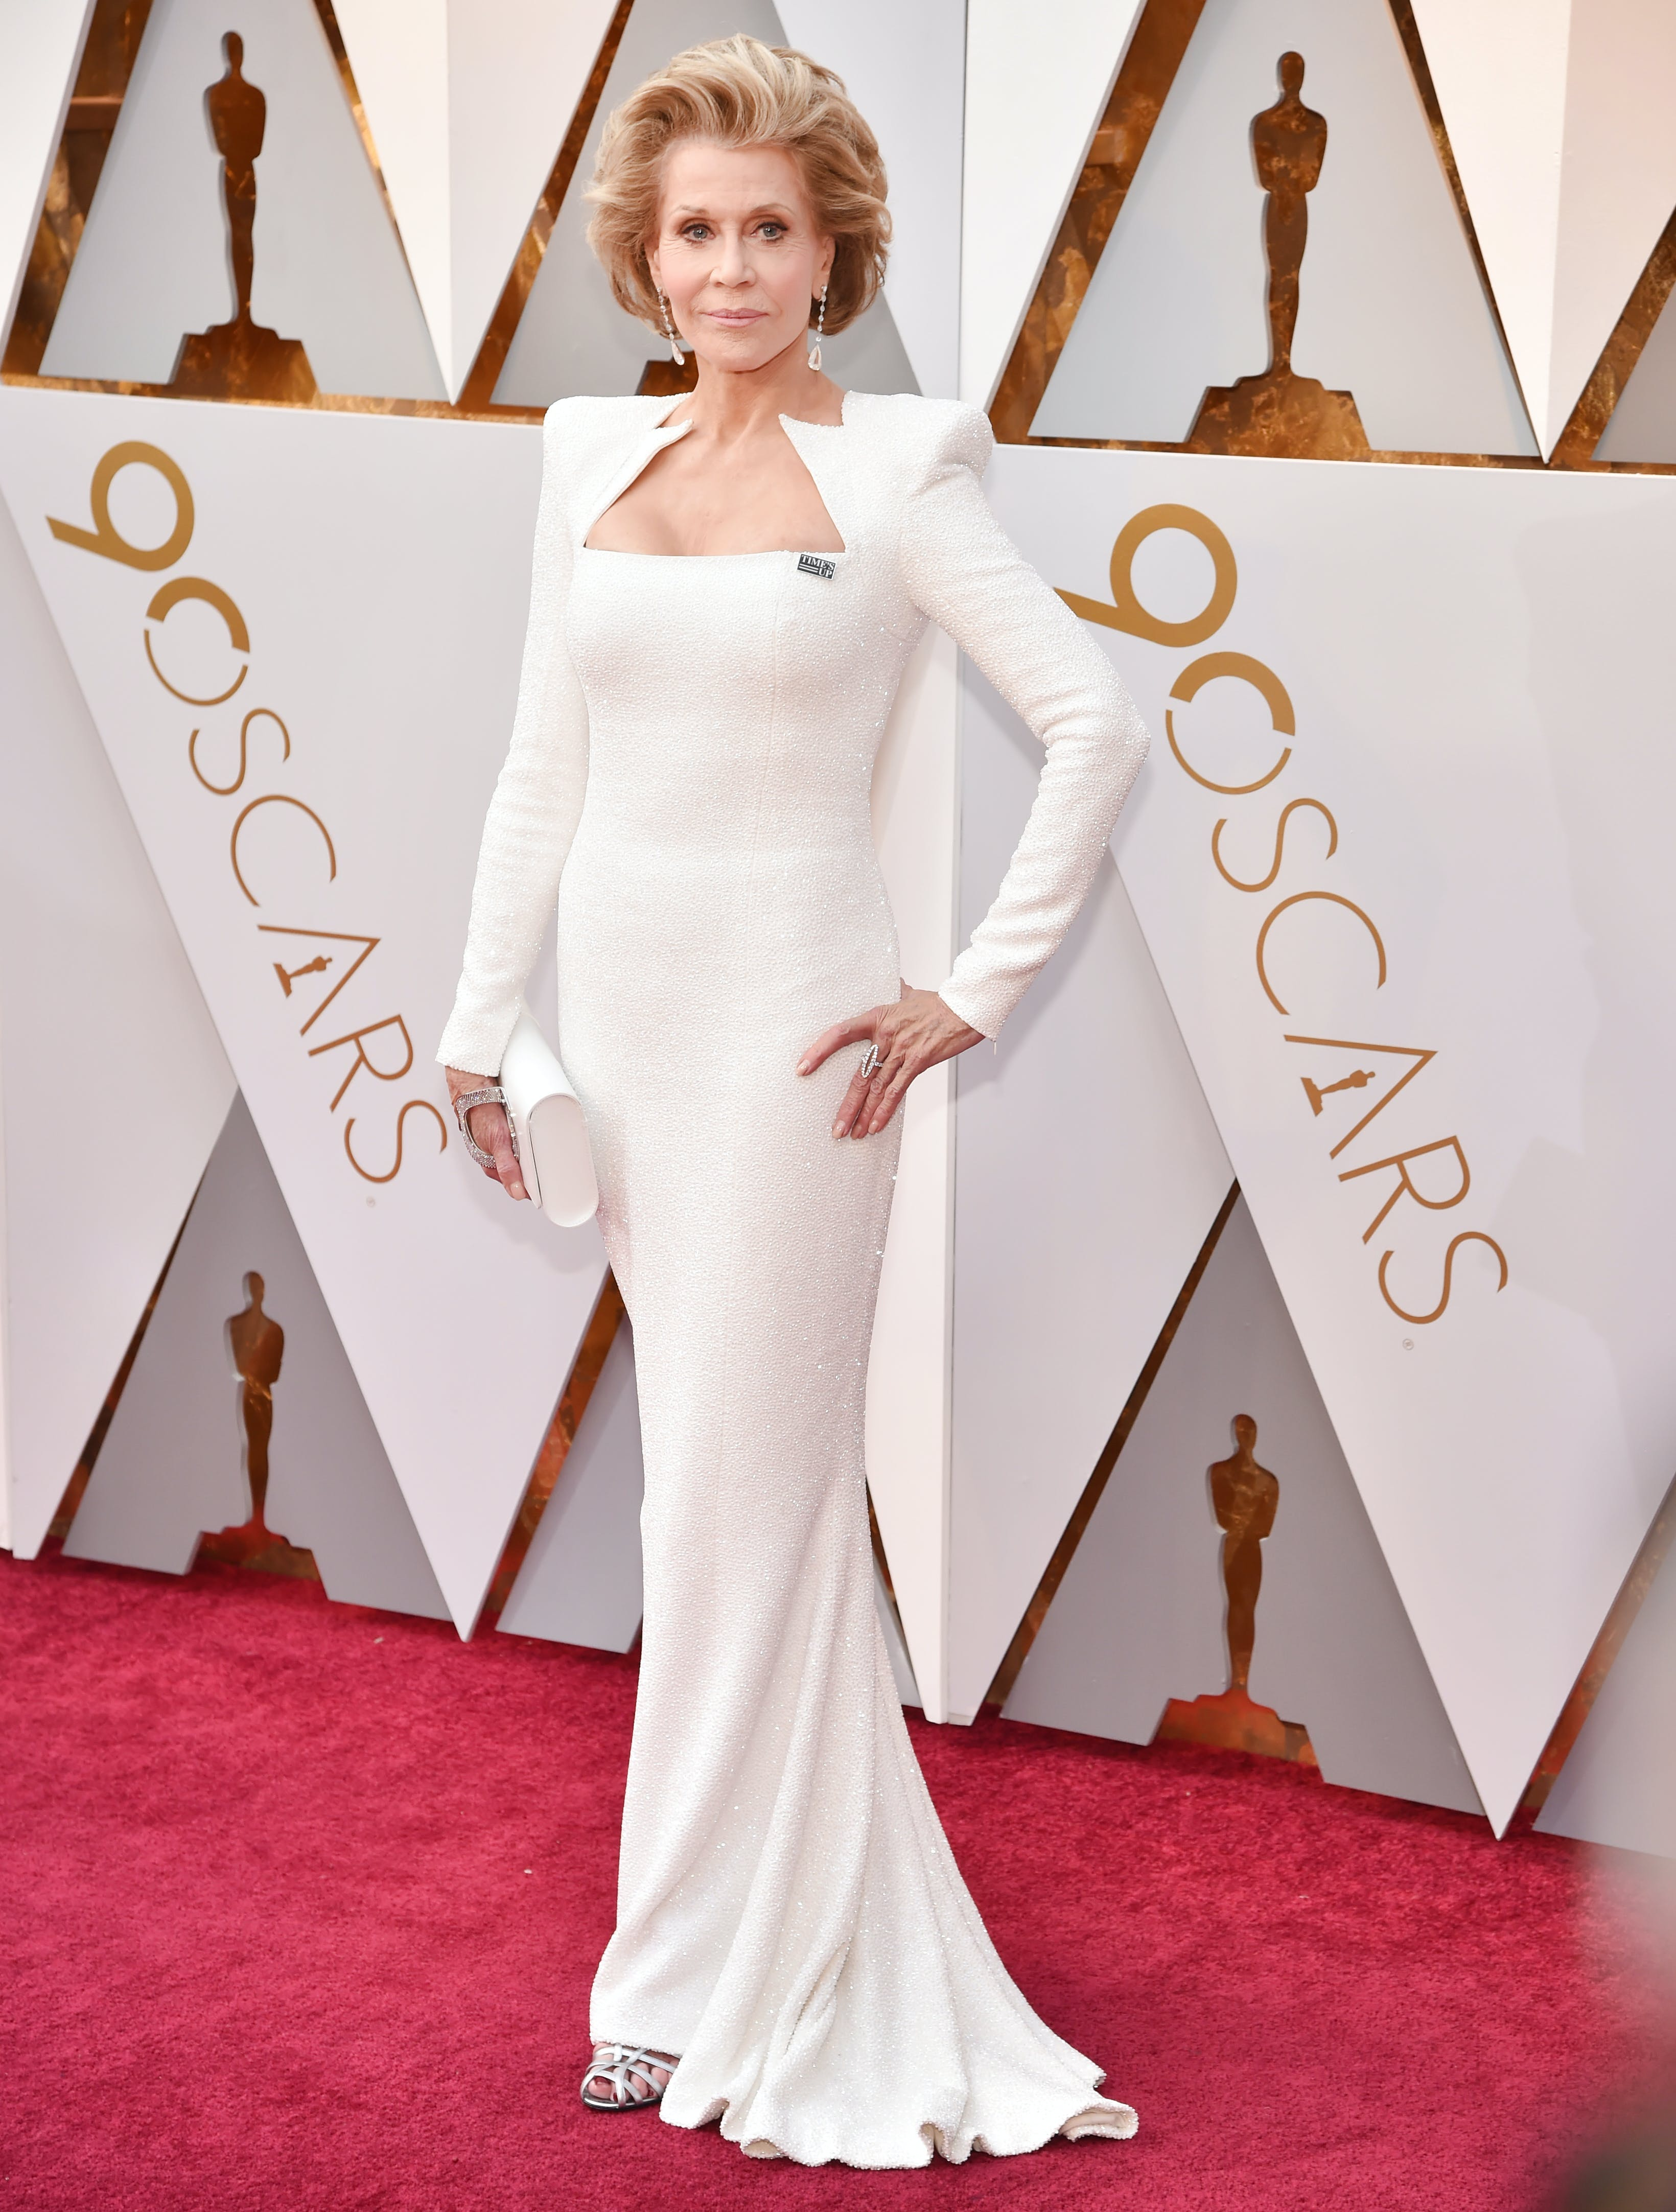 Jane Fonda at the 2018 Oscars